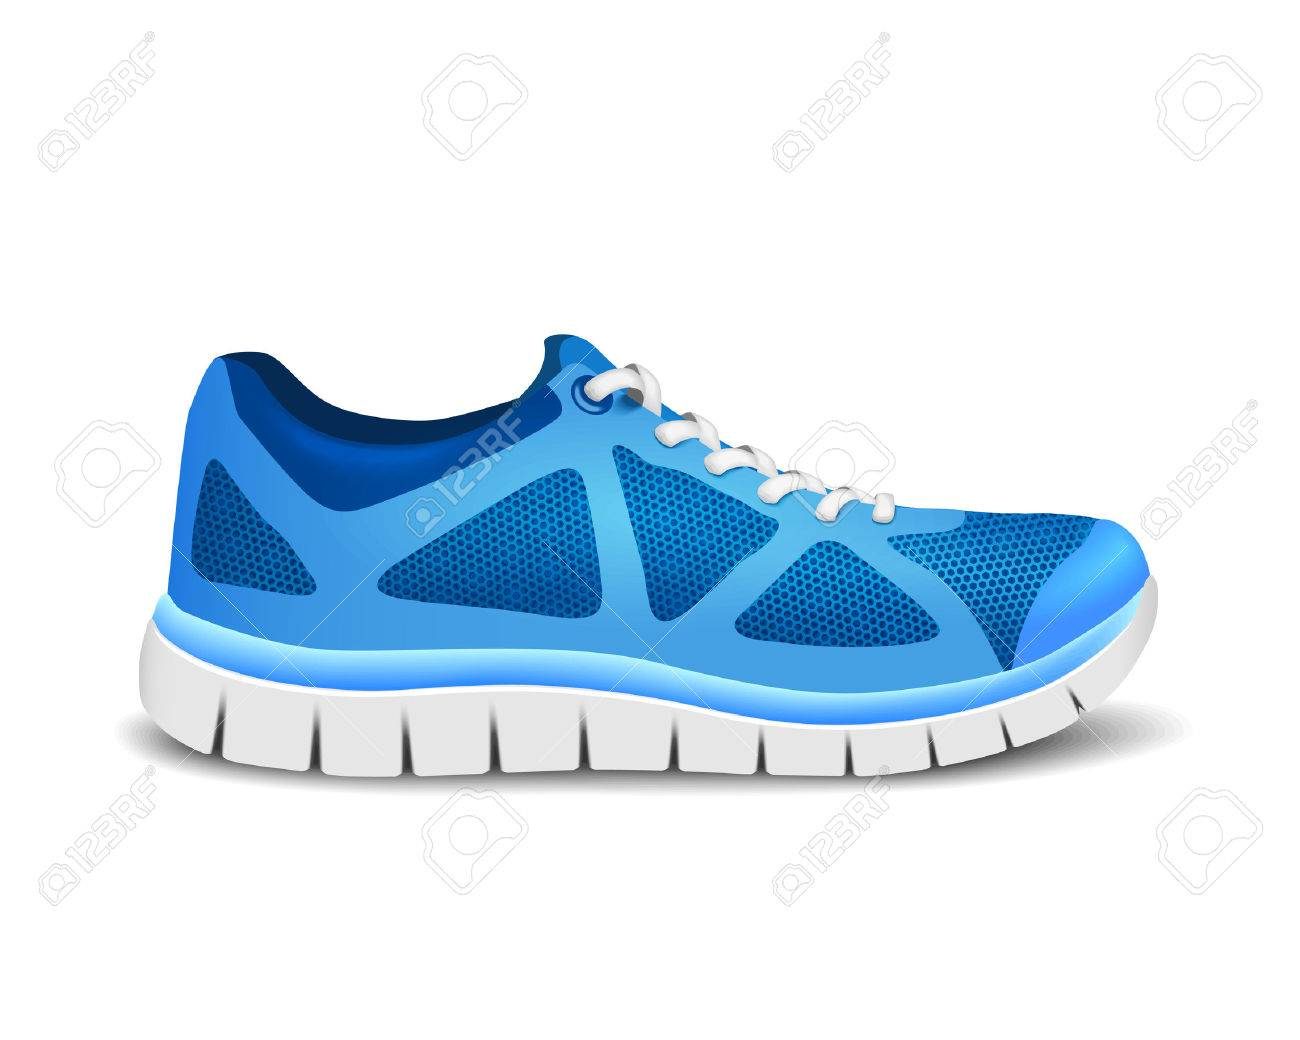 Blue sport shoes for running - 42018769